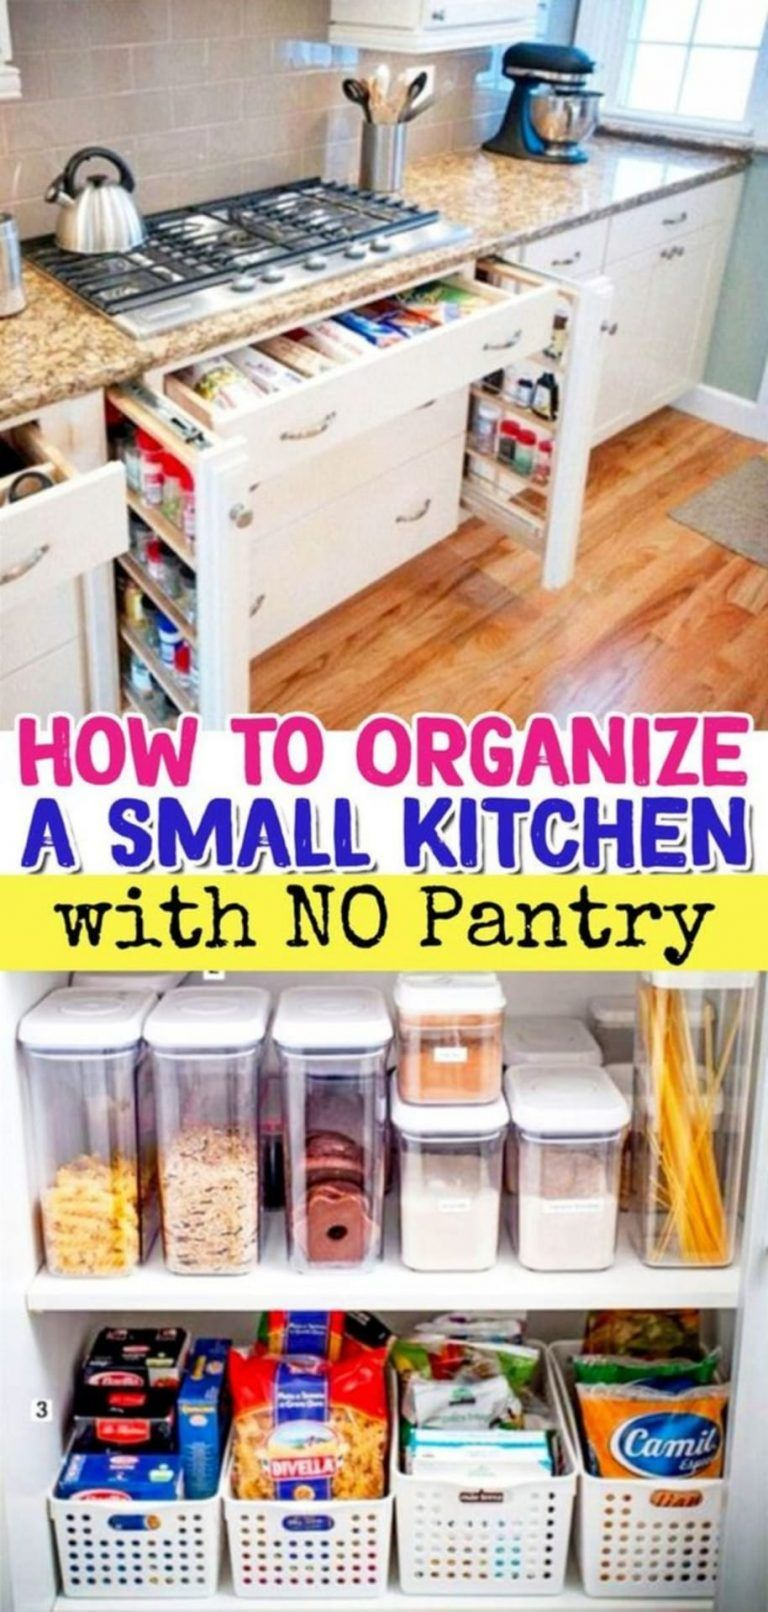 38 Creative Storage Solutions For Small Spaces Awesome Diy Ideas Kitchen Without Pantry No Pantry Solutions Small Kitchen Pantry